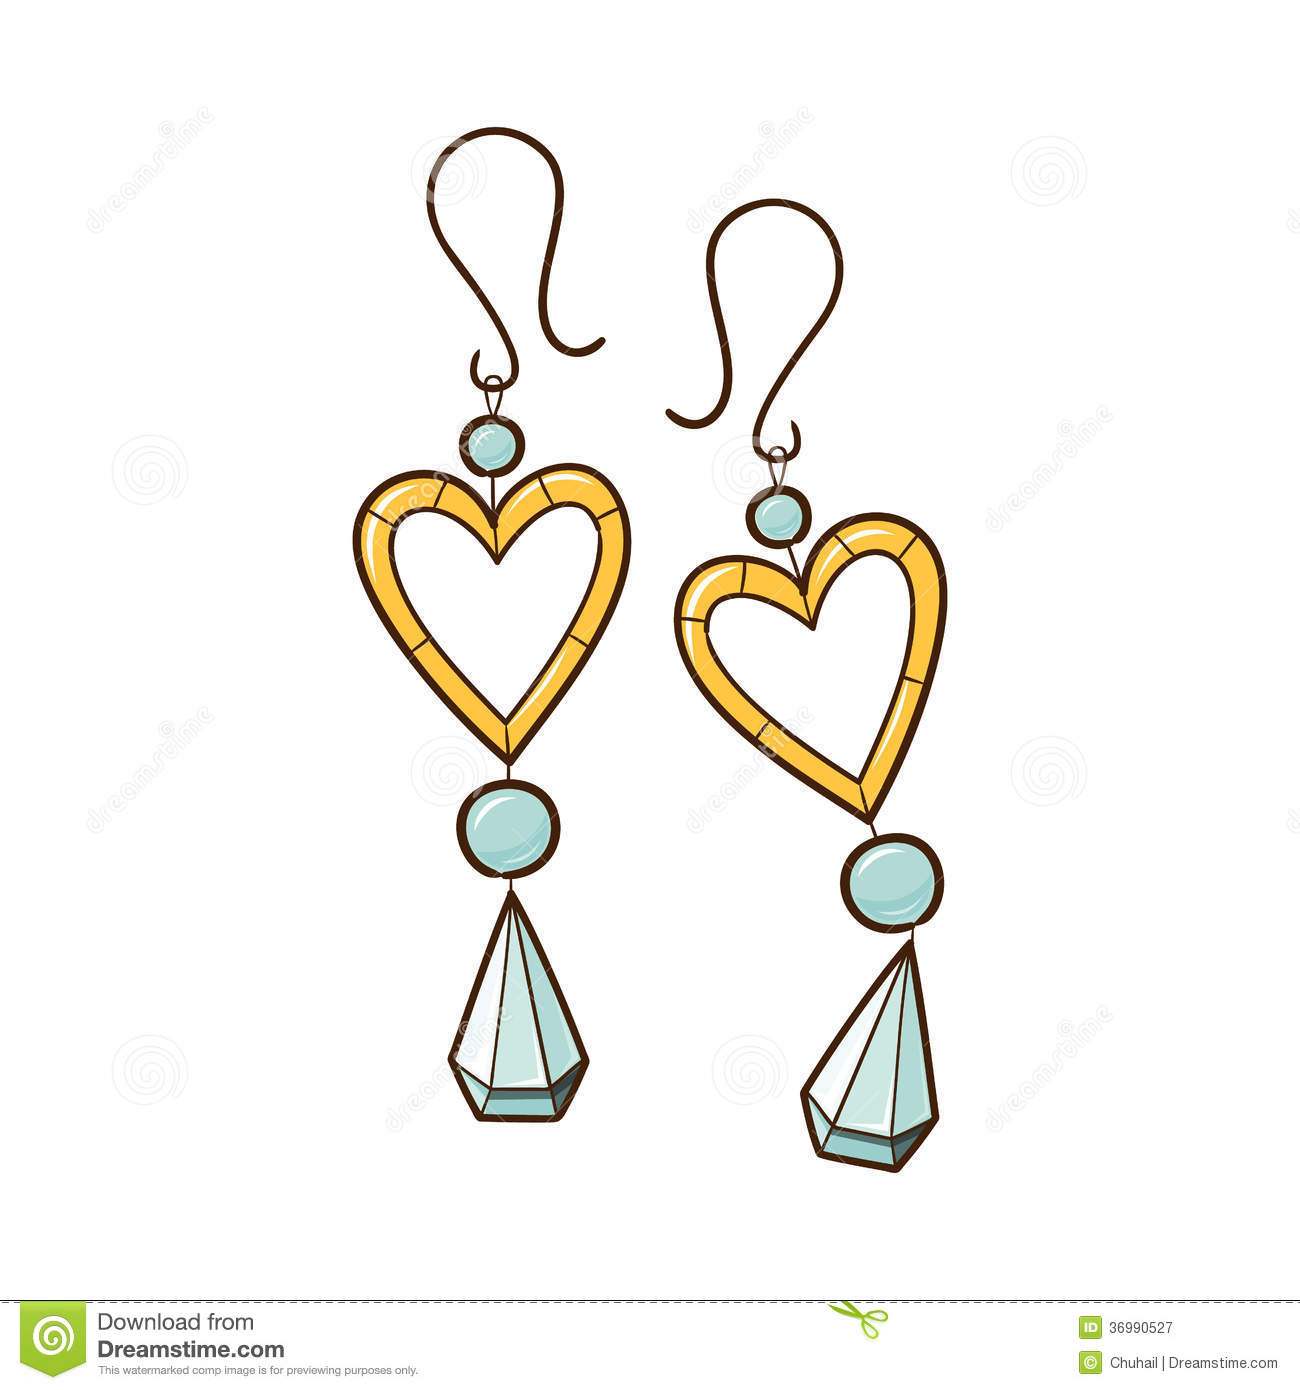 Clipart of earrings.